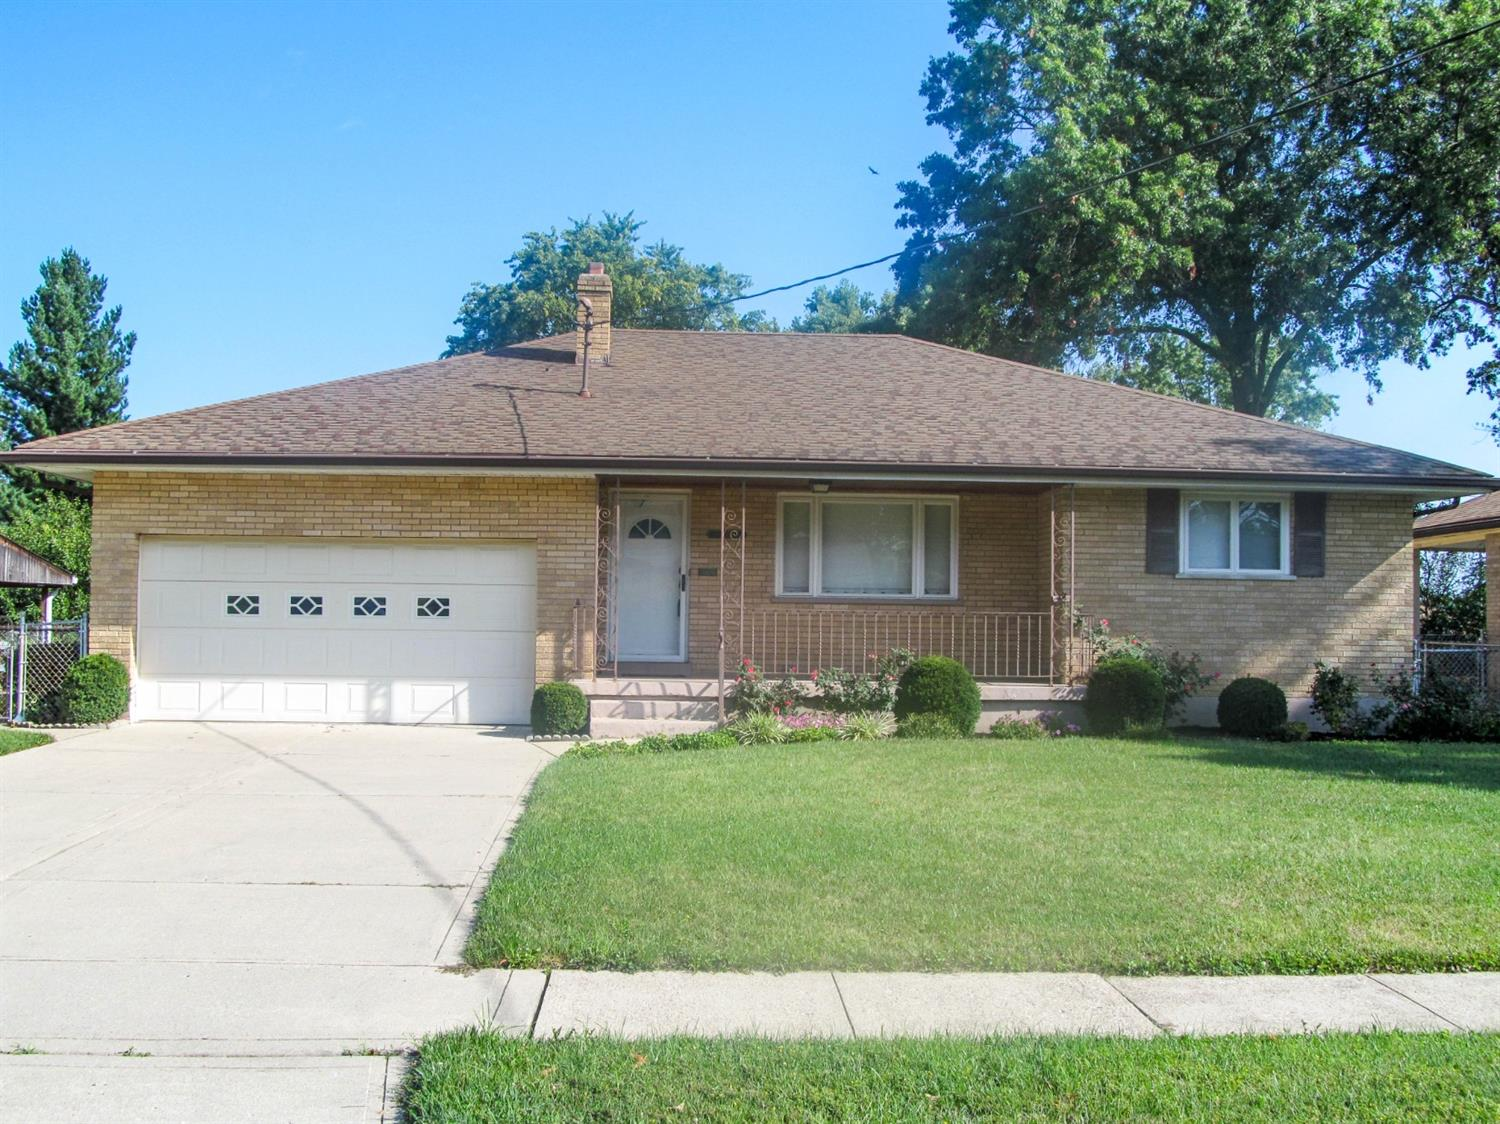 3378 Nandale Drive, Colerain Twp, Ohio 45239, 3 Bedrooms Bedrooms, 5 Rooms Rooms,2 BathroomsBathrooms,Single Family Residence,For Sale,Nandale,1714253